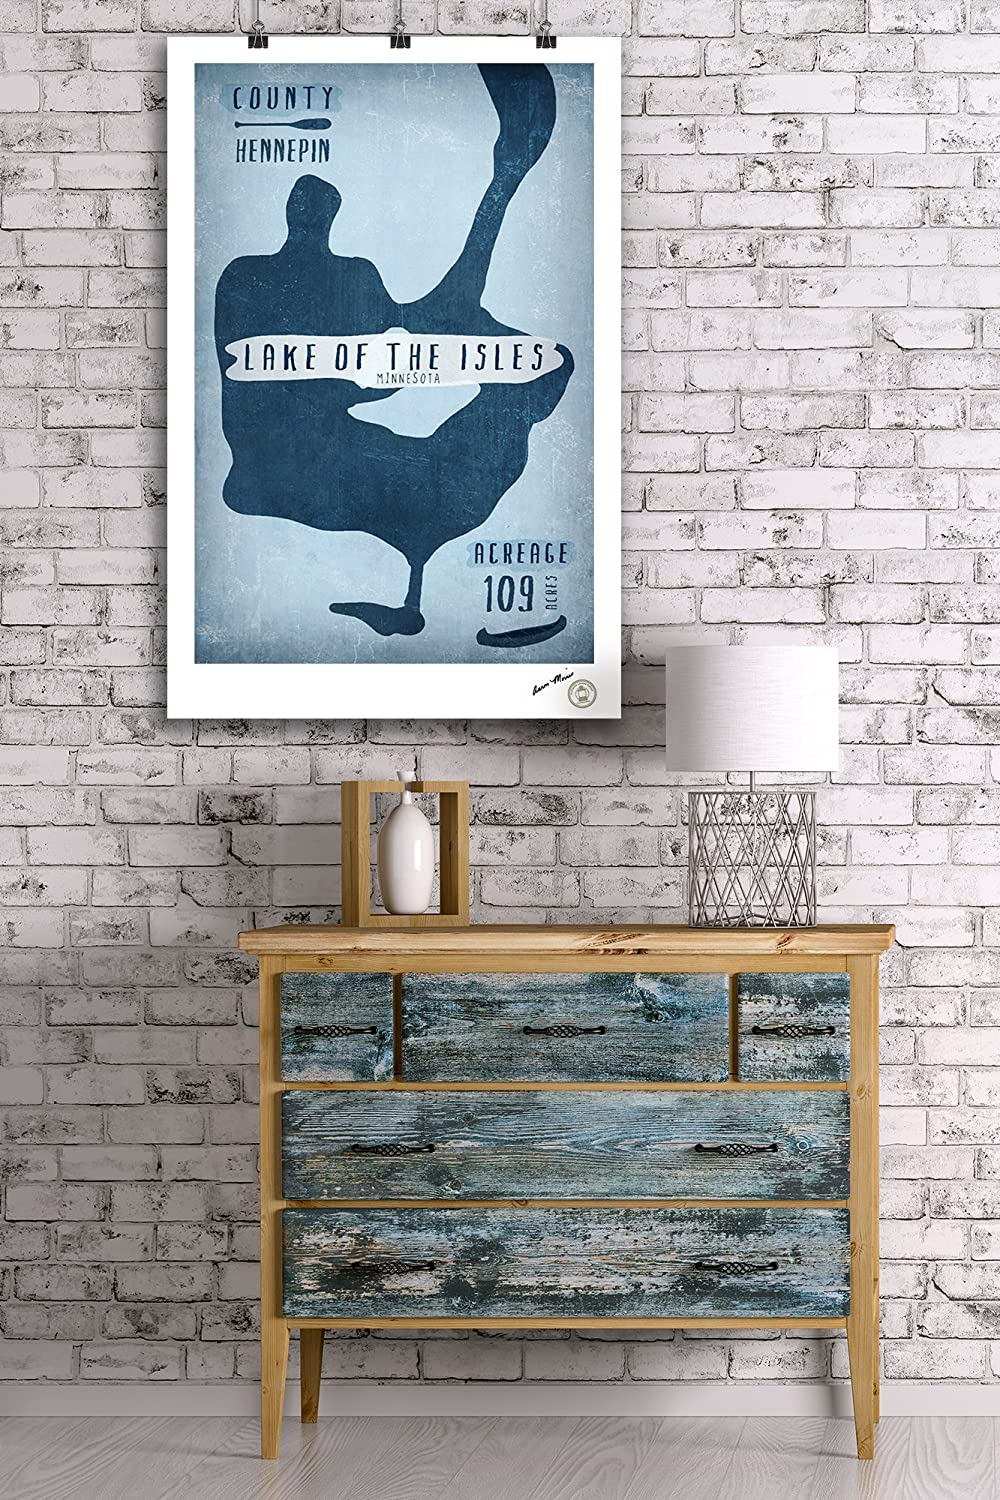 Minnesota Shape 24x36 Giclee Gallery Print, Wall Decor Travel Poster Acreage and County Lake Essentials Lake of the Isles